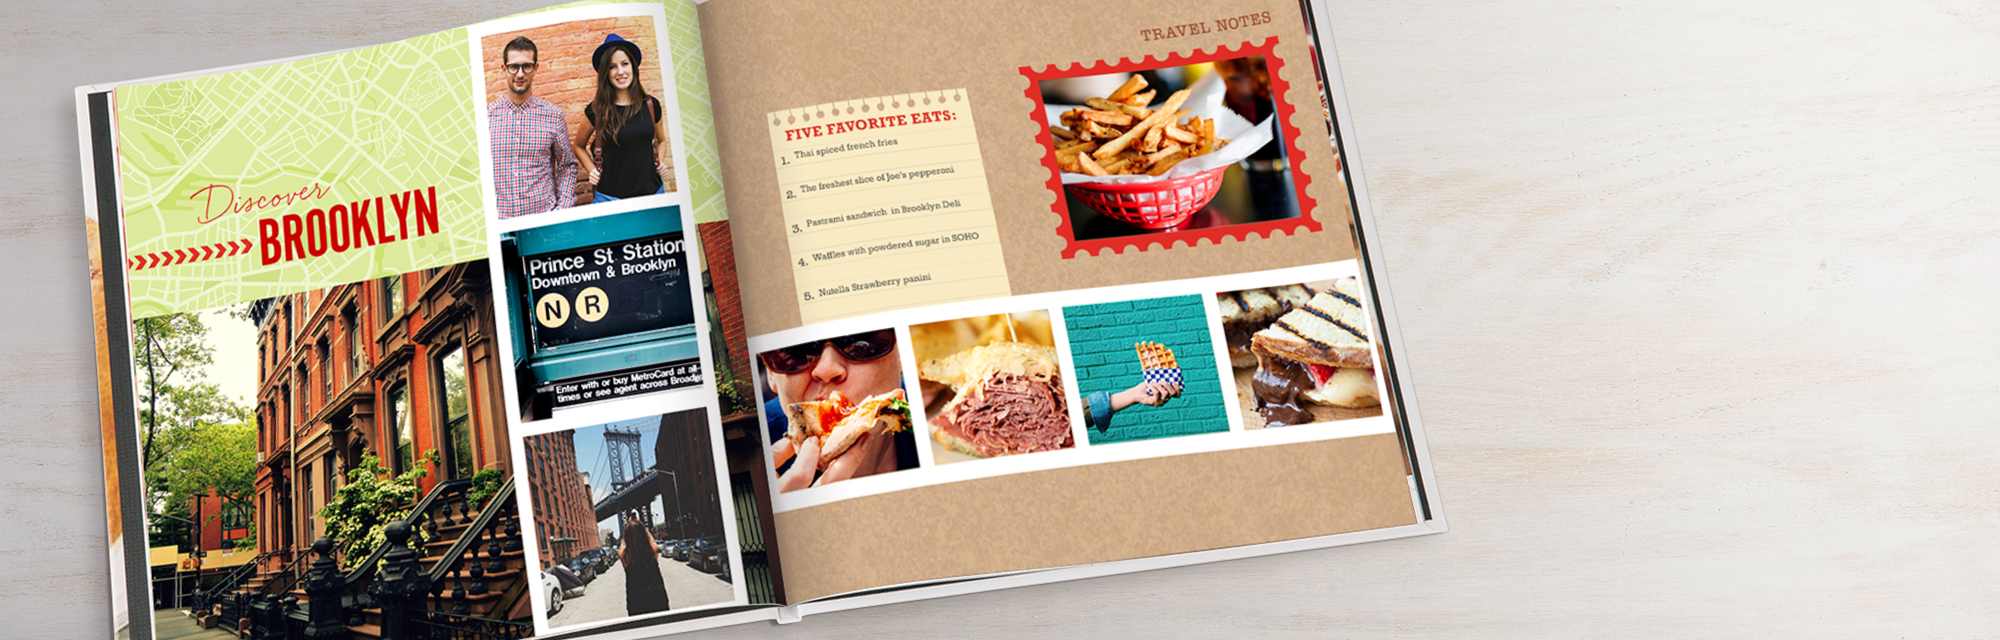 New! Designer layouts : Now featuring dozens of picture-perfect layouts all designed to suit your style.